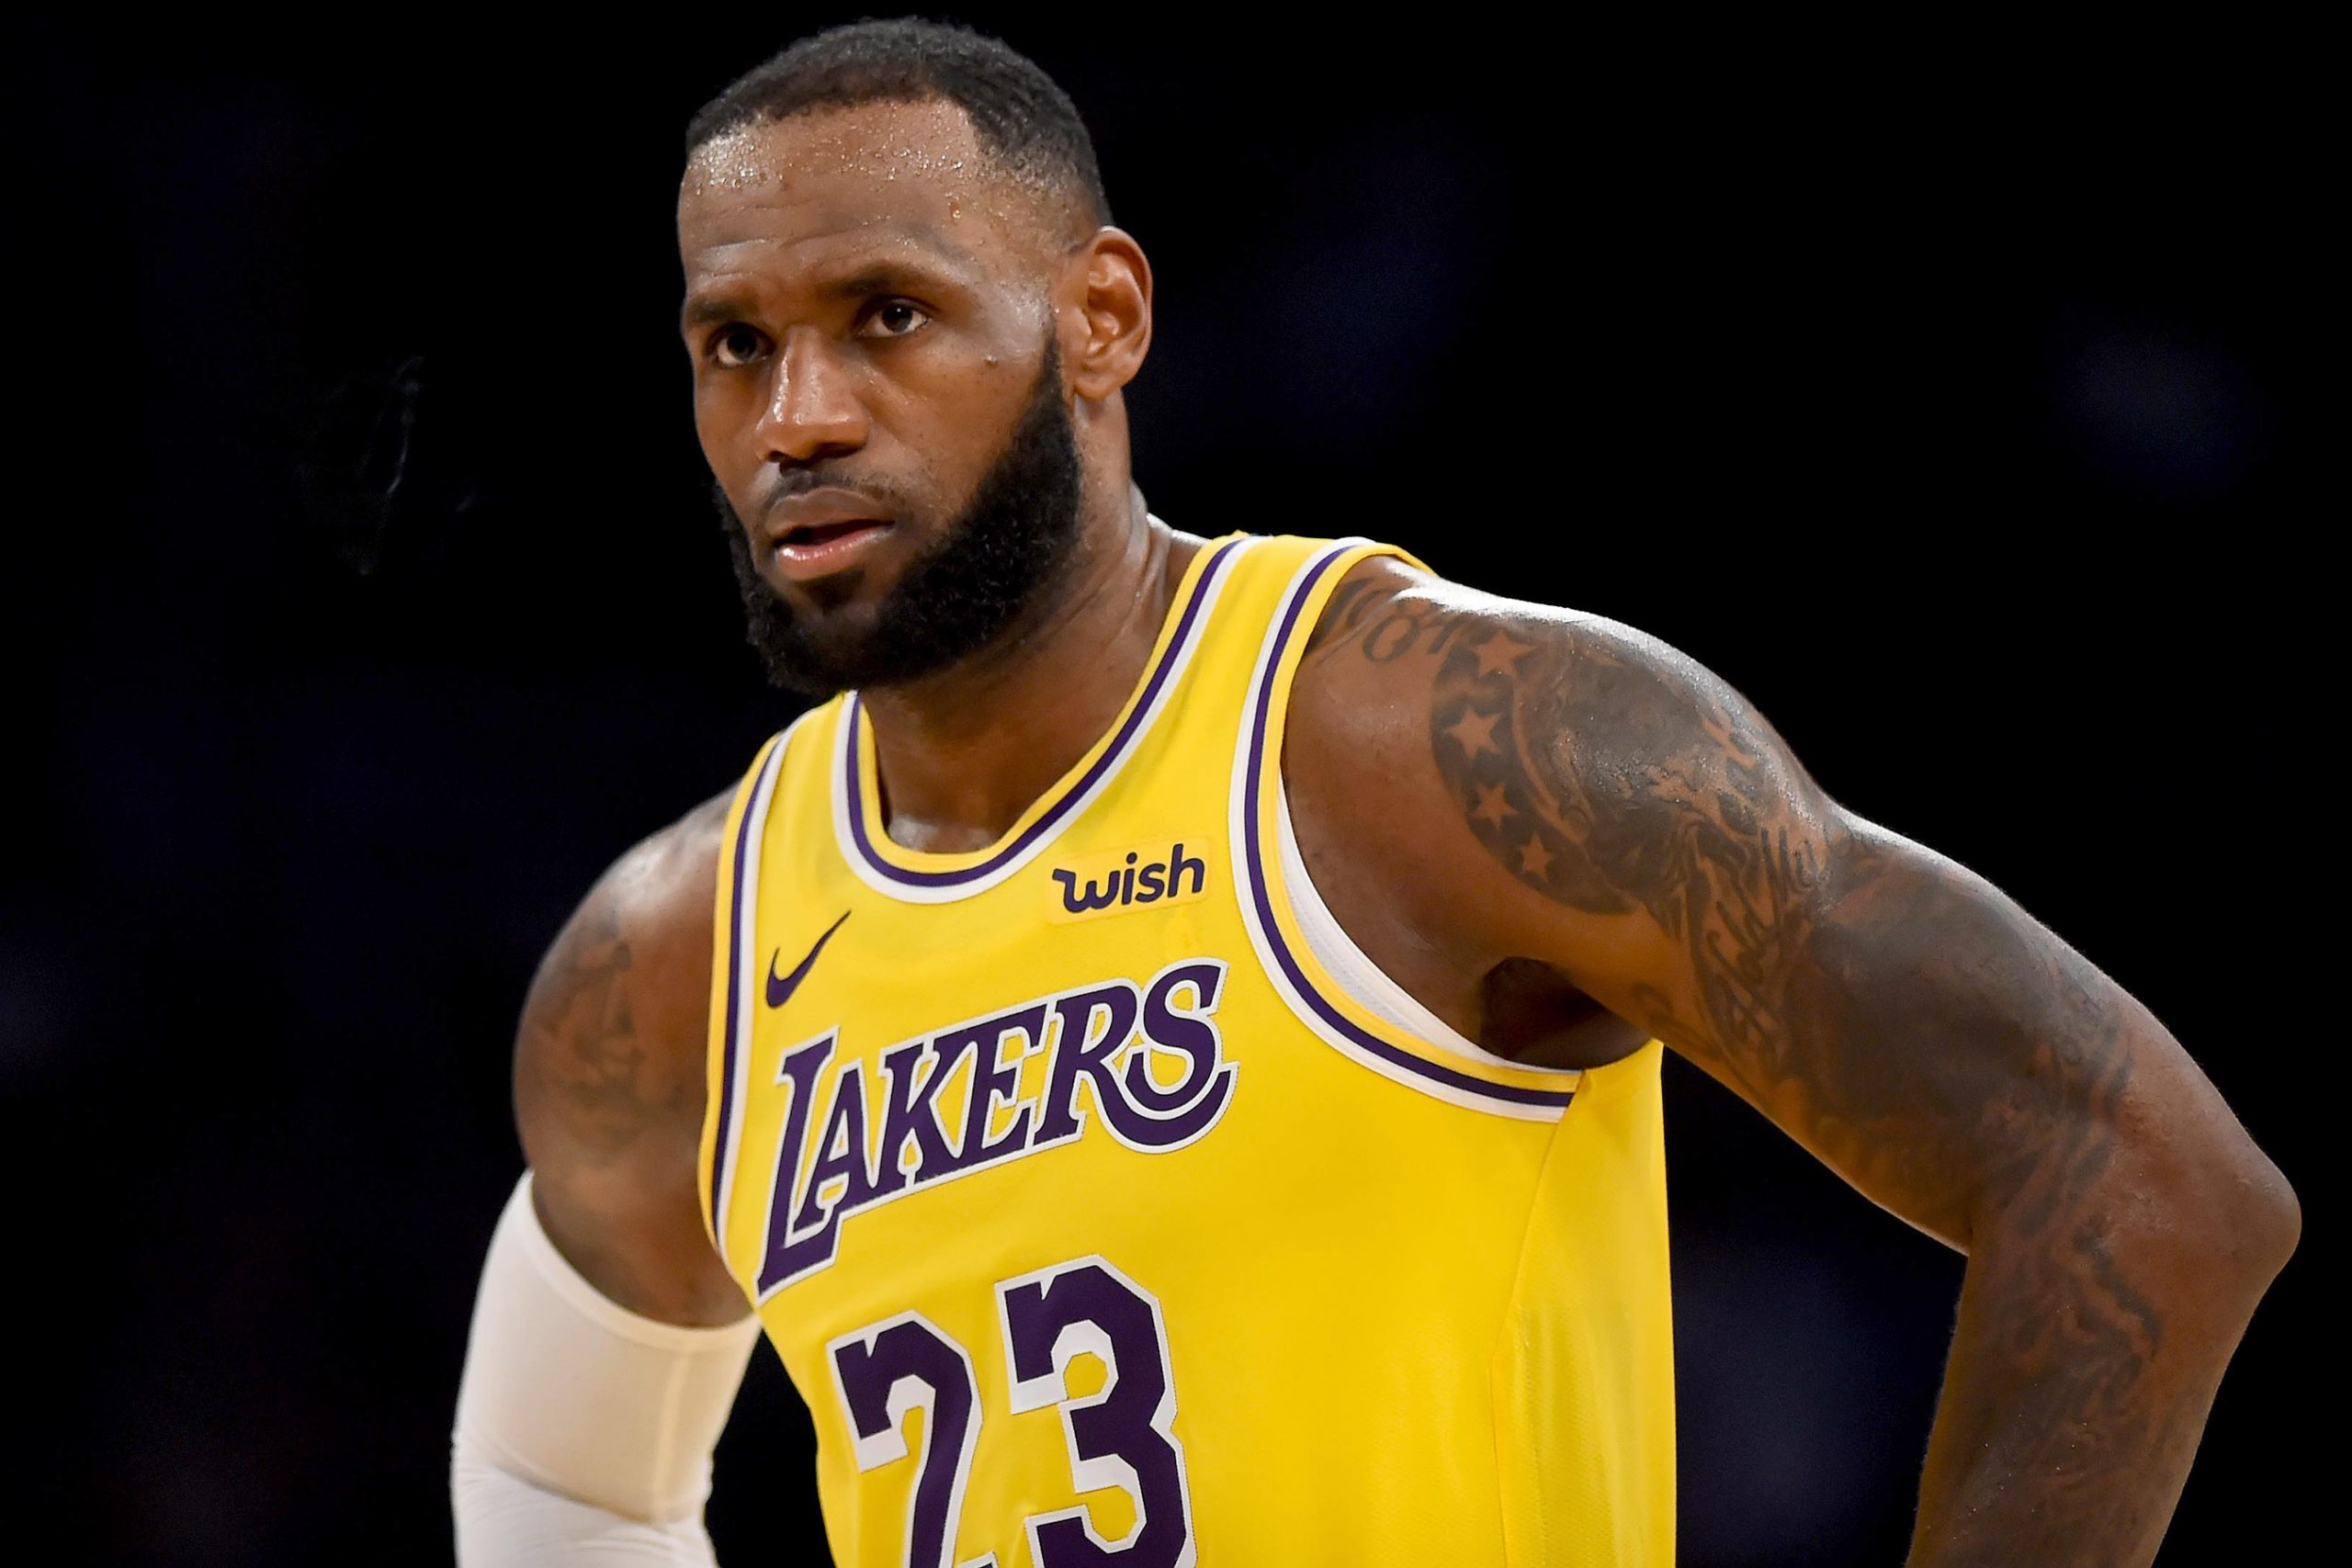 LOS ANGELES, CA - OCTOBER 22: The Lakers' LeBron James #23 during their game against the Spurs at the Staples Center on Mon. Oct. 22, 2018. The Spurs defeated the Lakers 143-142 in overtime. (Photo by Hans Gutknecht/Digital First Media/Los Angeles Daily News via Getty Images)